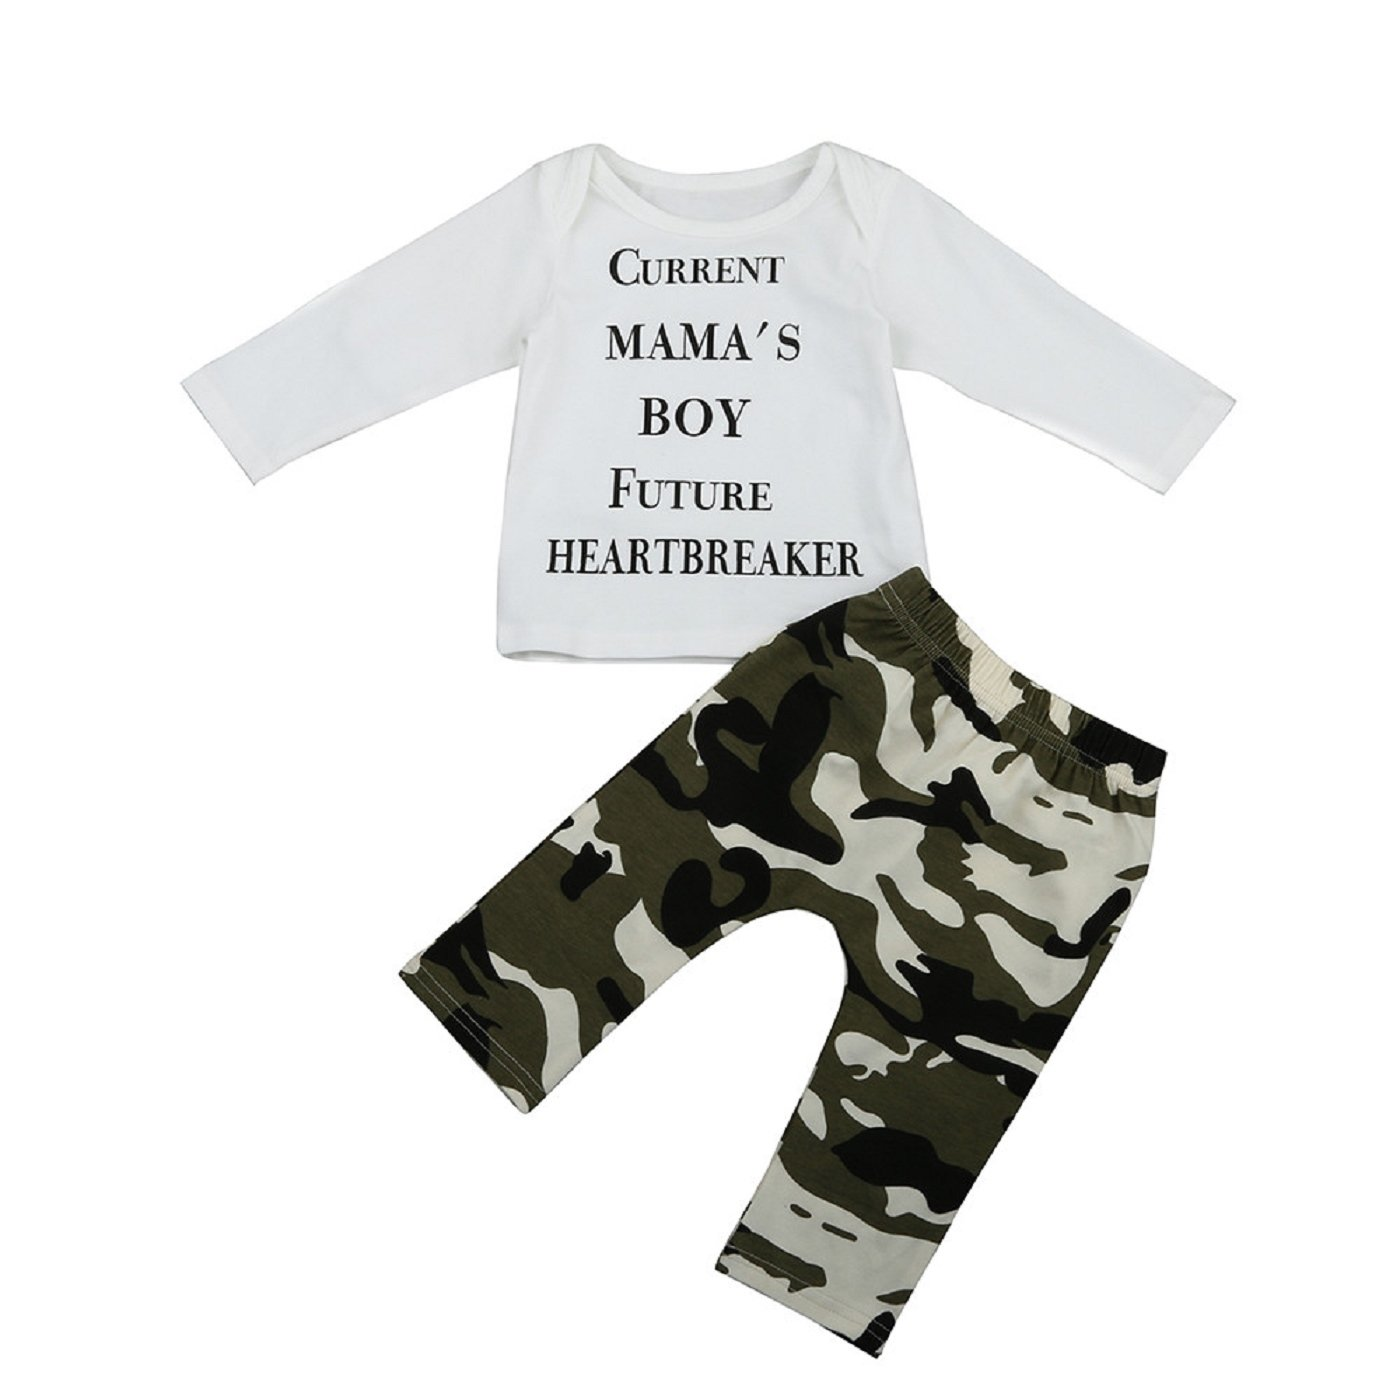 Sumen Newborn Kids Baby Boys Outfits Clothes Letter T-shirt Tops+Camouflage Pants Set bessky